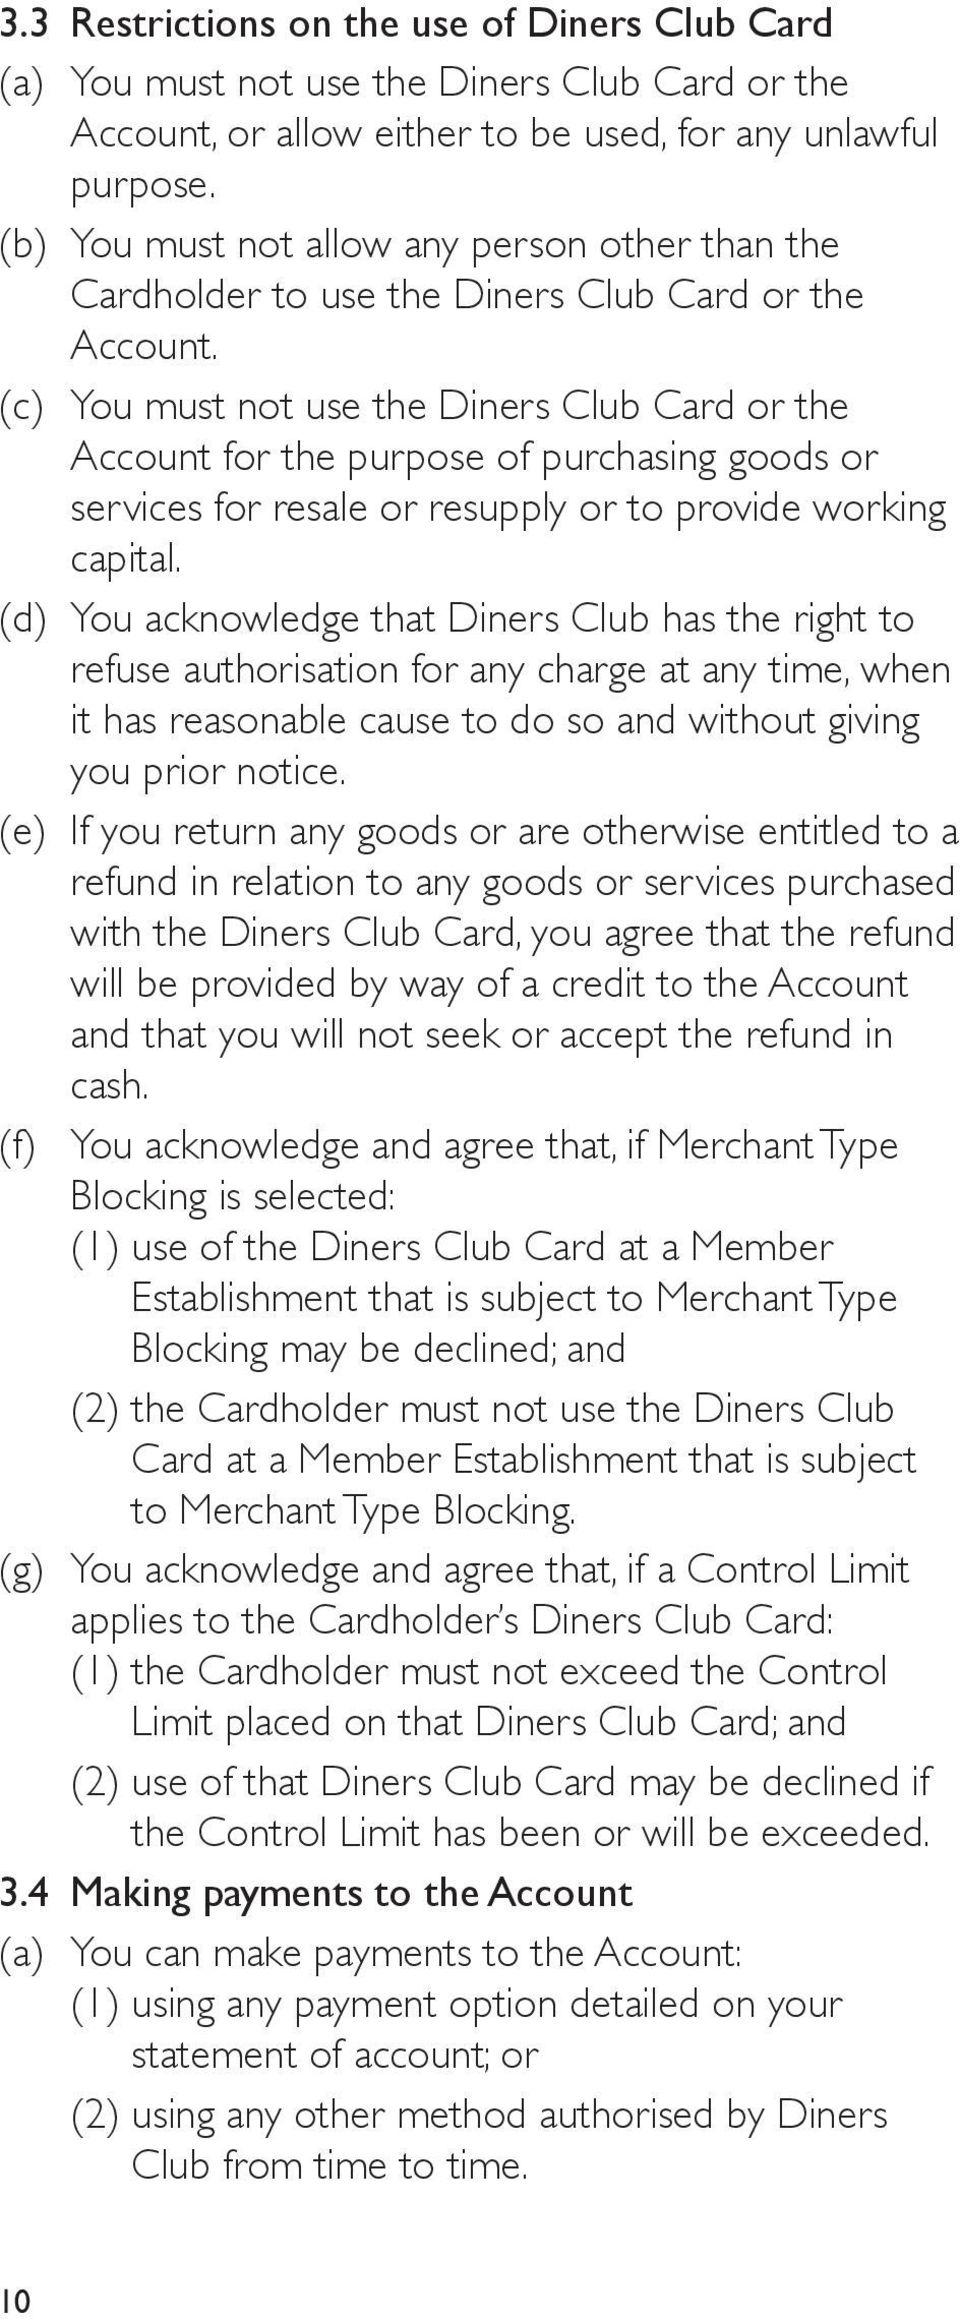 (c) You must not use the Diners Club Card or the Account for the purpose of purchasing goods or services for resale or resupply or to provide working capital.